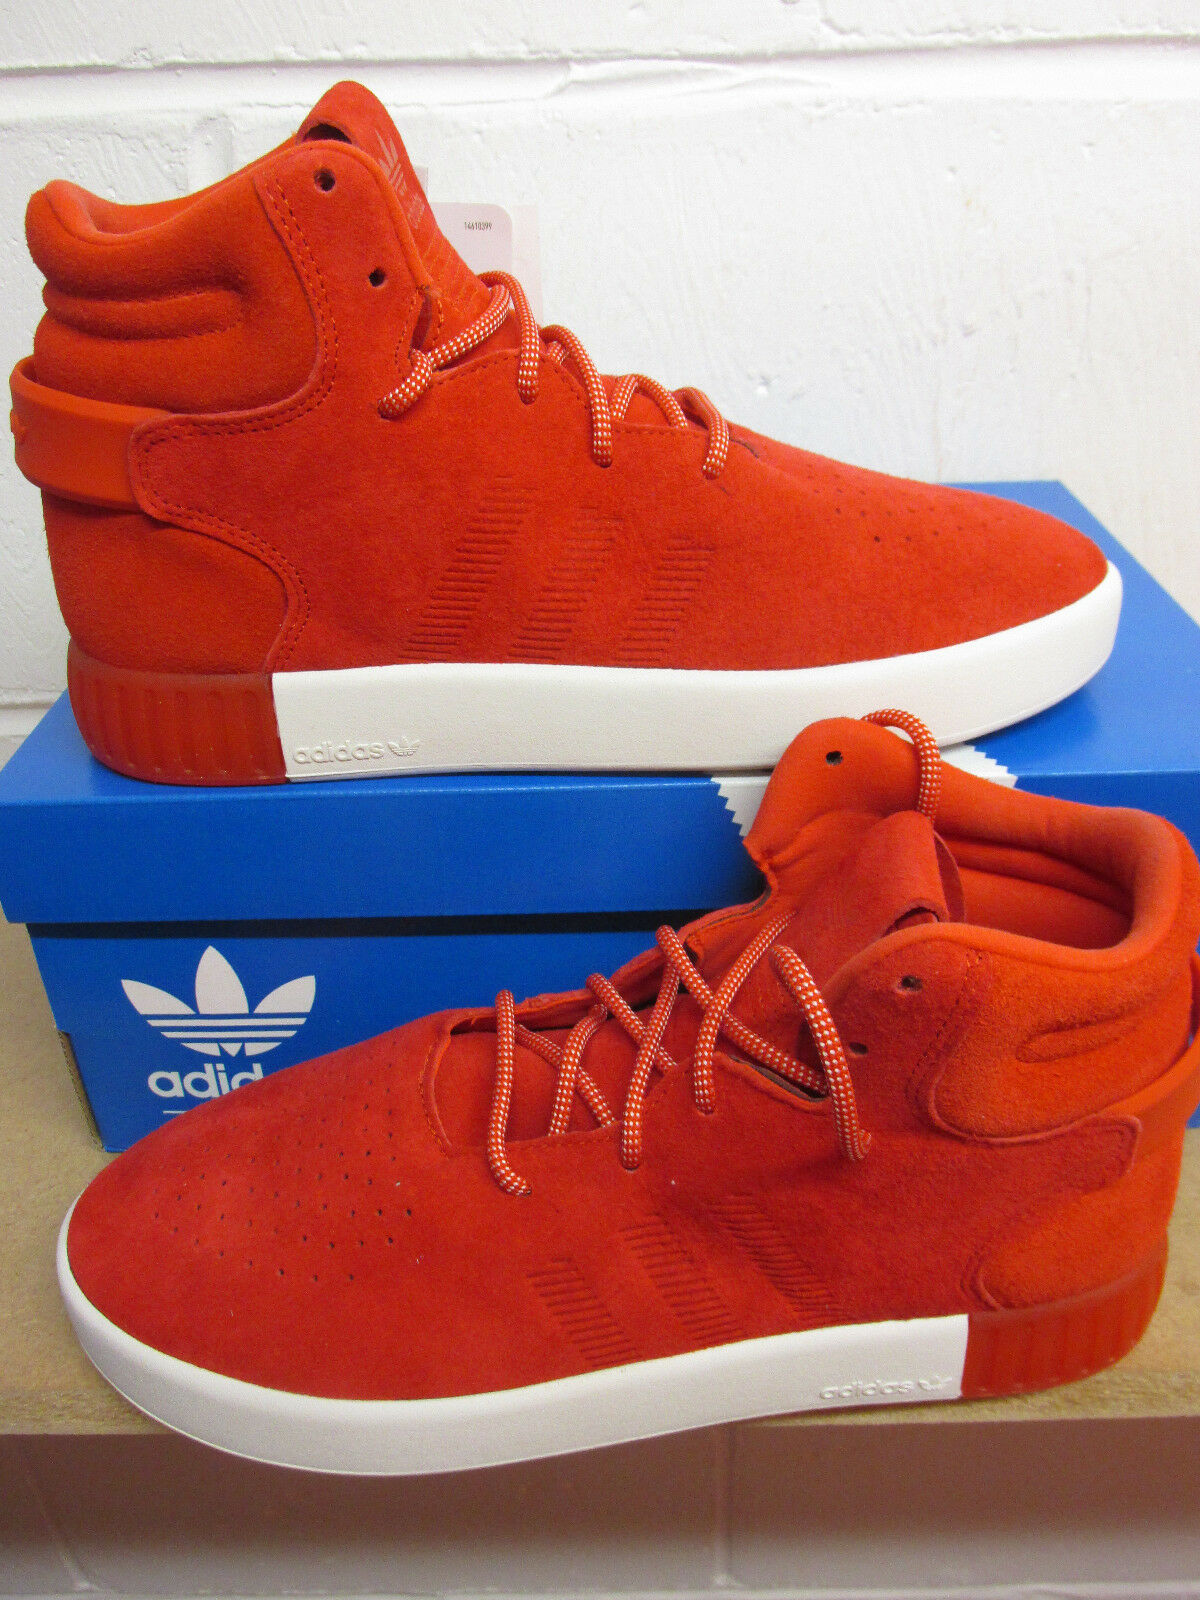 Adidas Originals Tubular Top Invader Tira Zapatillas Hi Top Tubular S80244 Zapatillas e69af1